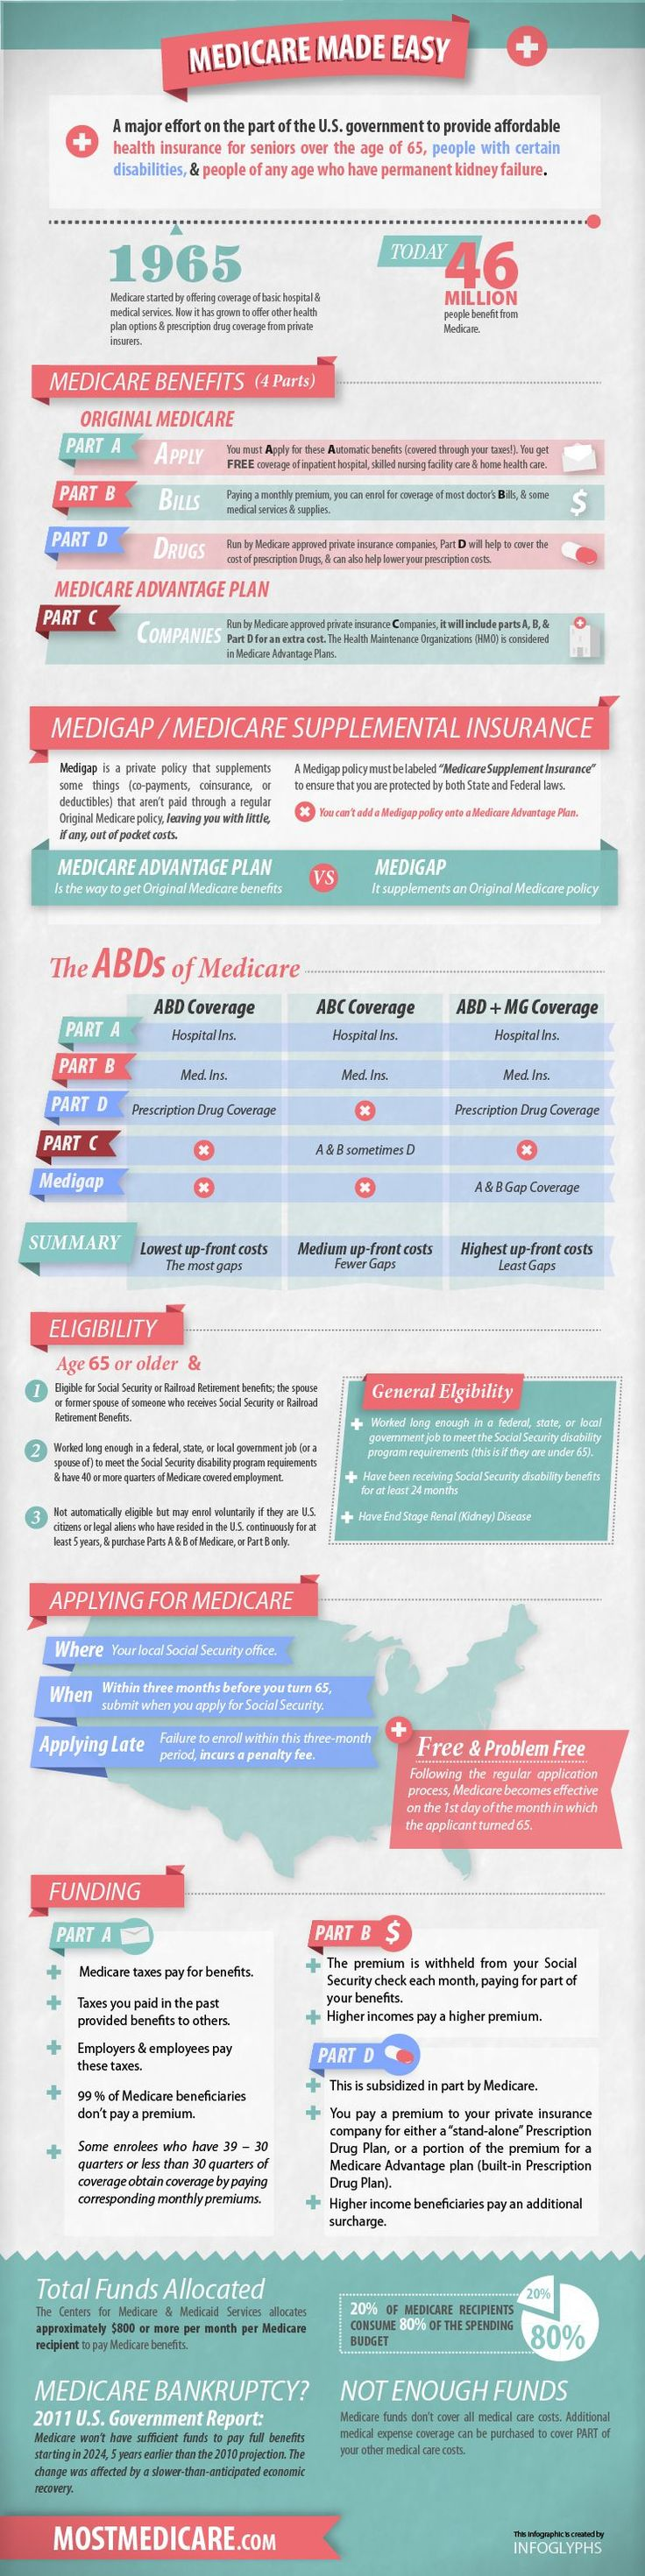 Medicare Made Easy | Source = Mostmedicare.com